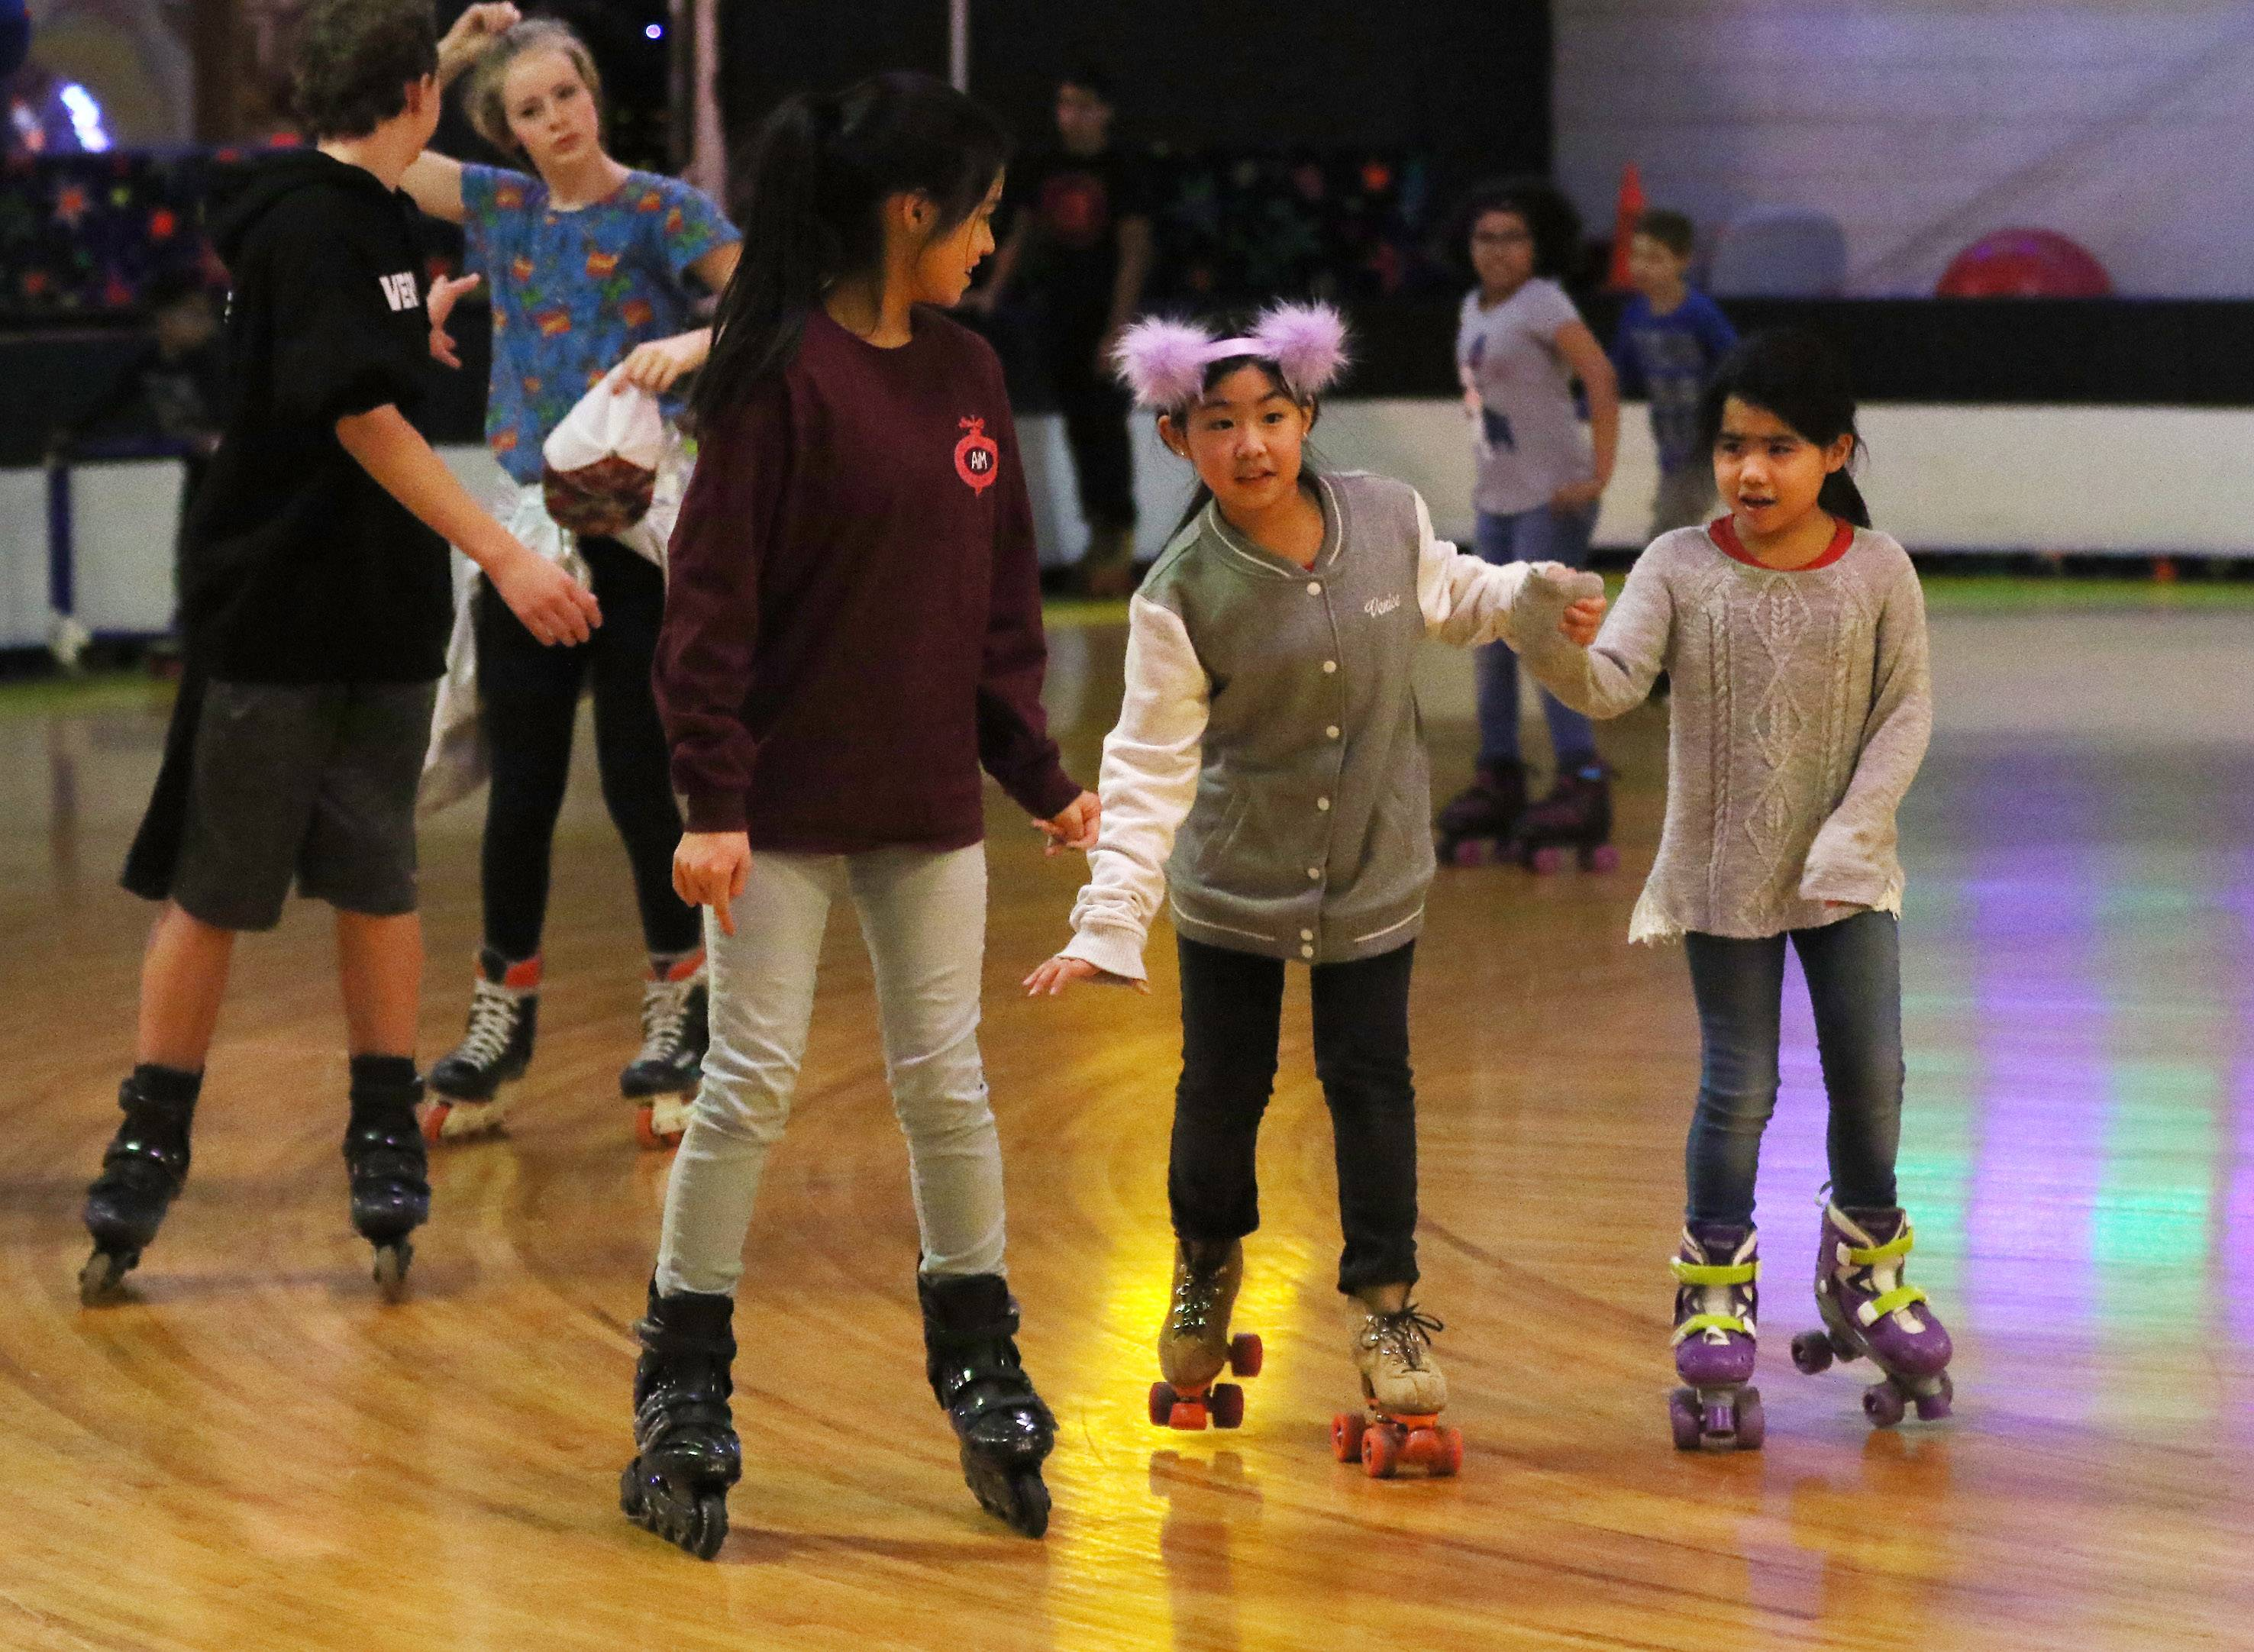 Orbit Skate Center in Palatine, which opened in 1972, will close March 31. Its owner declined to disclose the building's new owner, but said its days as a roller skating rink are done.